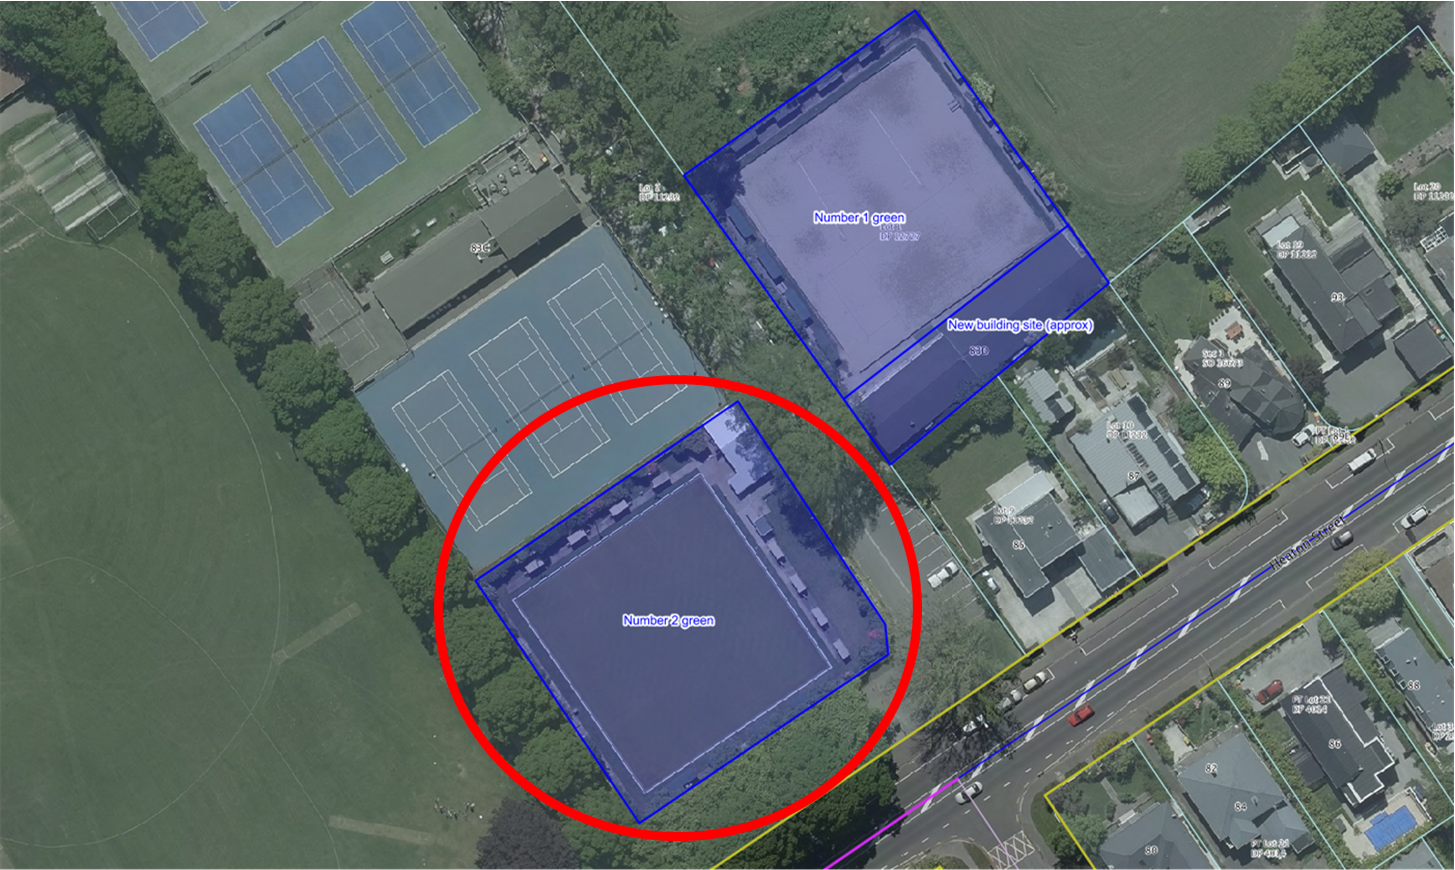 Lease area for the Number 2 Green (circled in red)